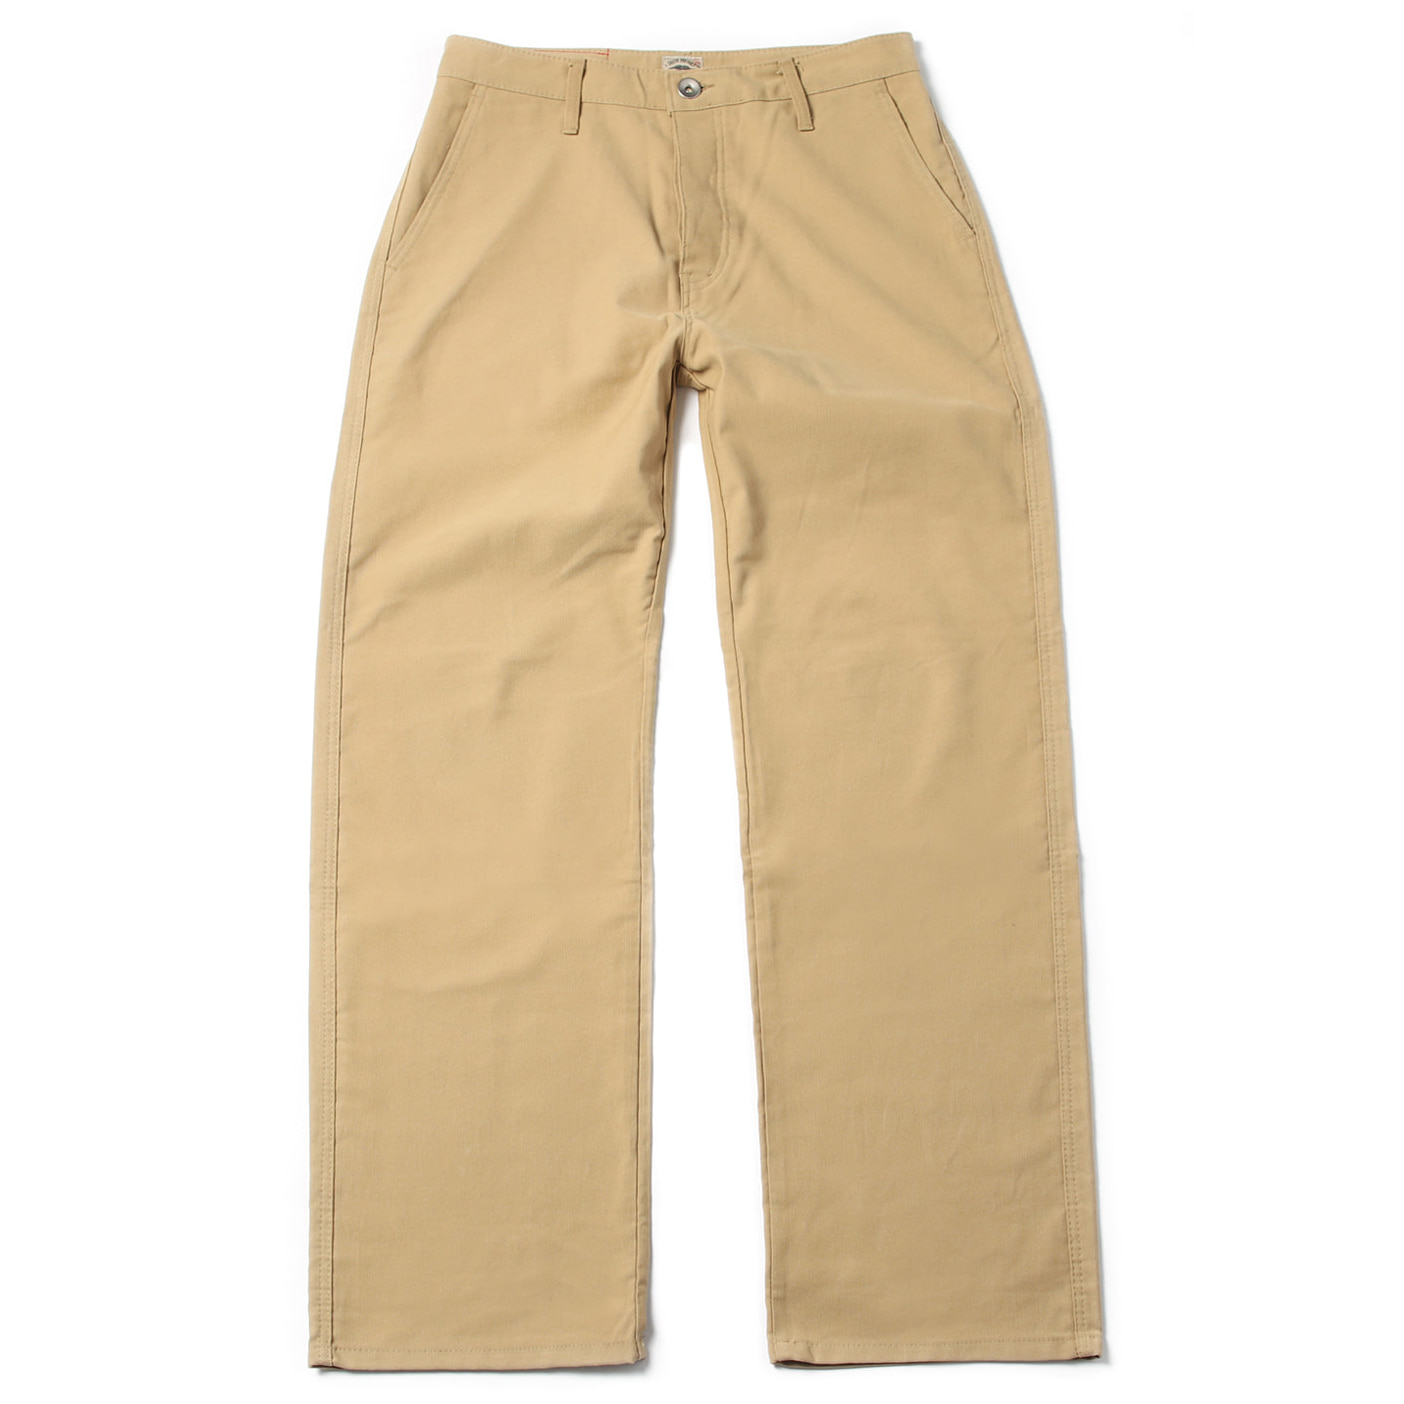 [콘보이] Jungle cloth work pants beige